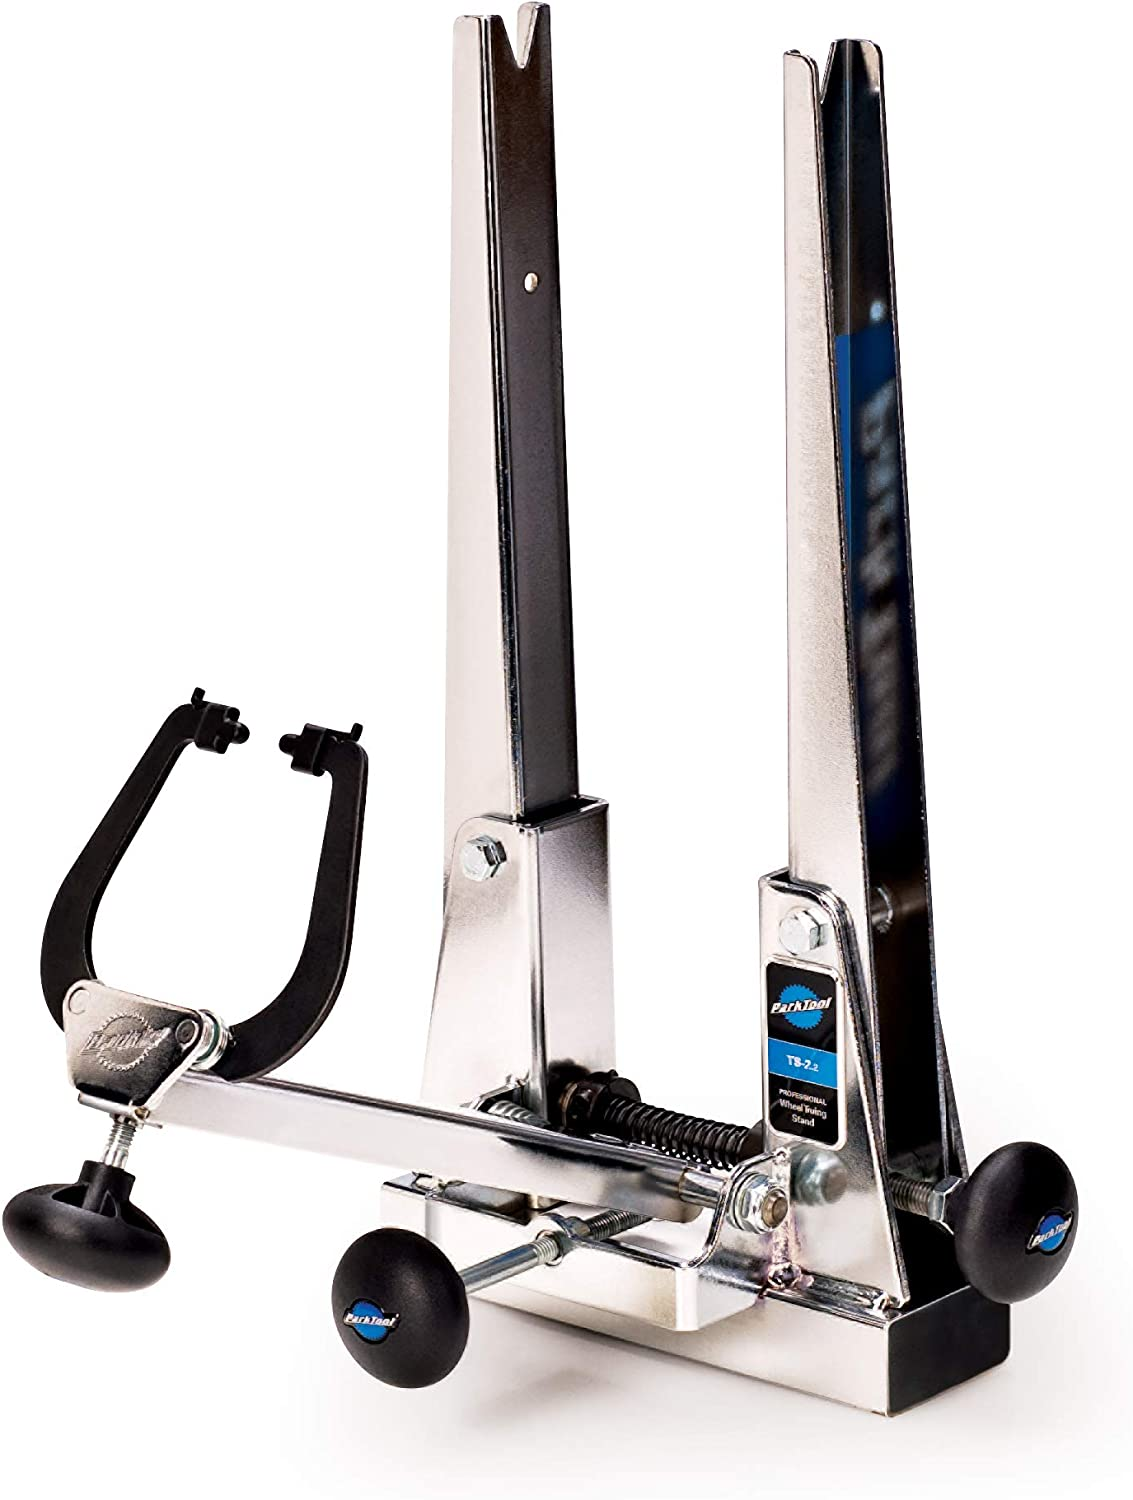 Park Tool TS-2.2 Professional Bicycle Wheel Truing Stand